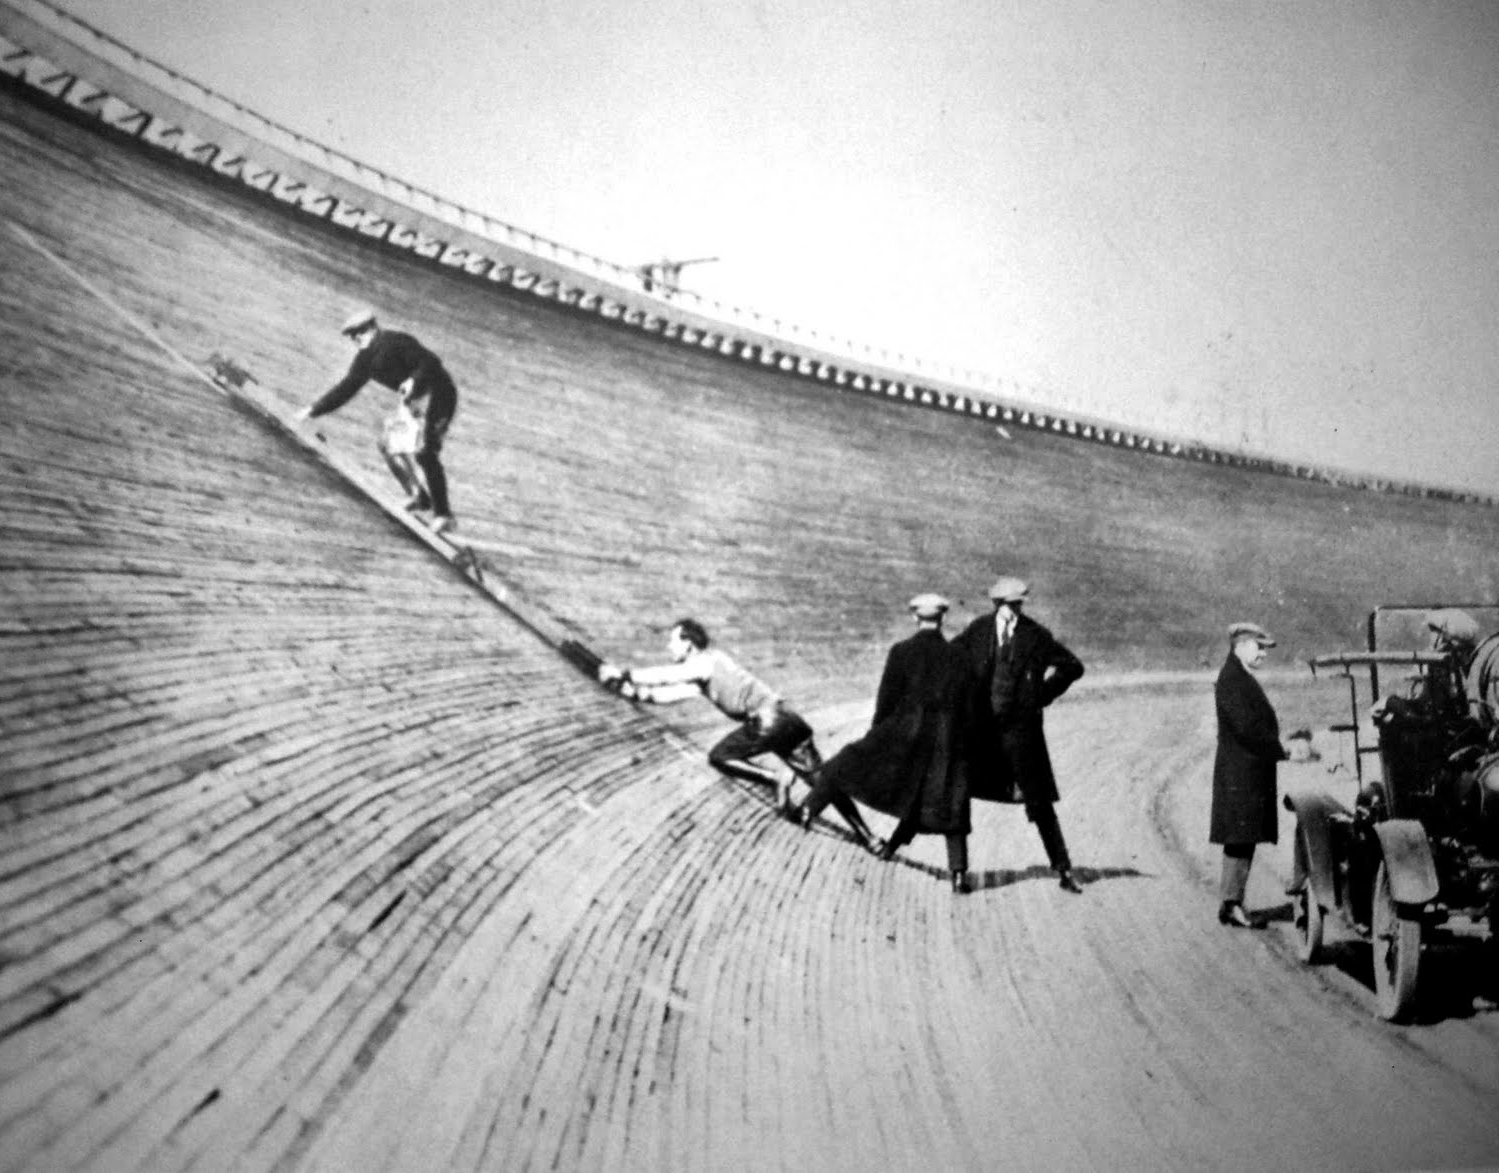 Los Angeles Motordrome boardtrack angle.